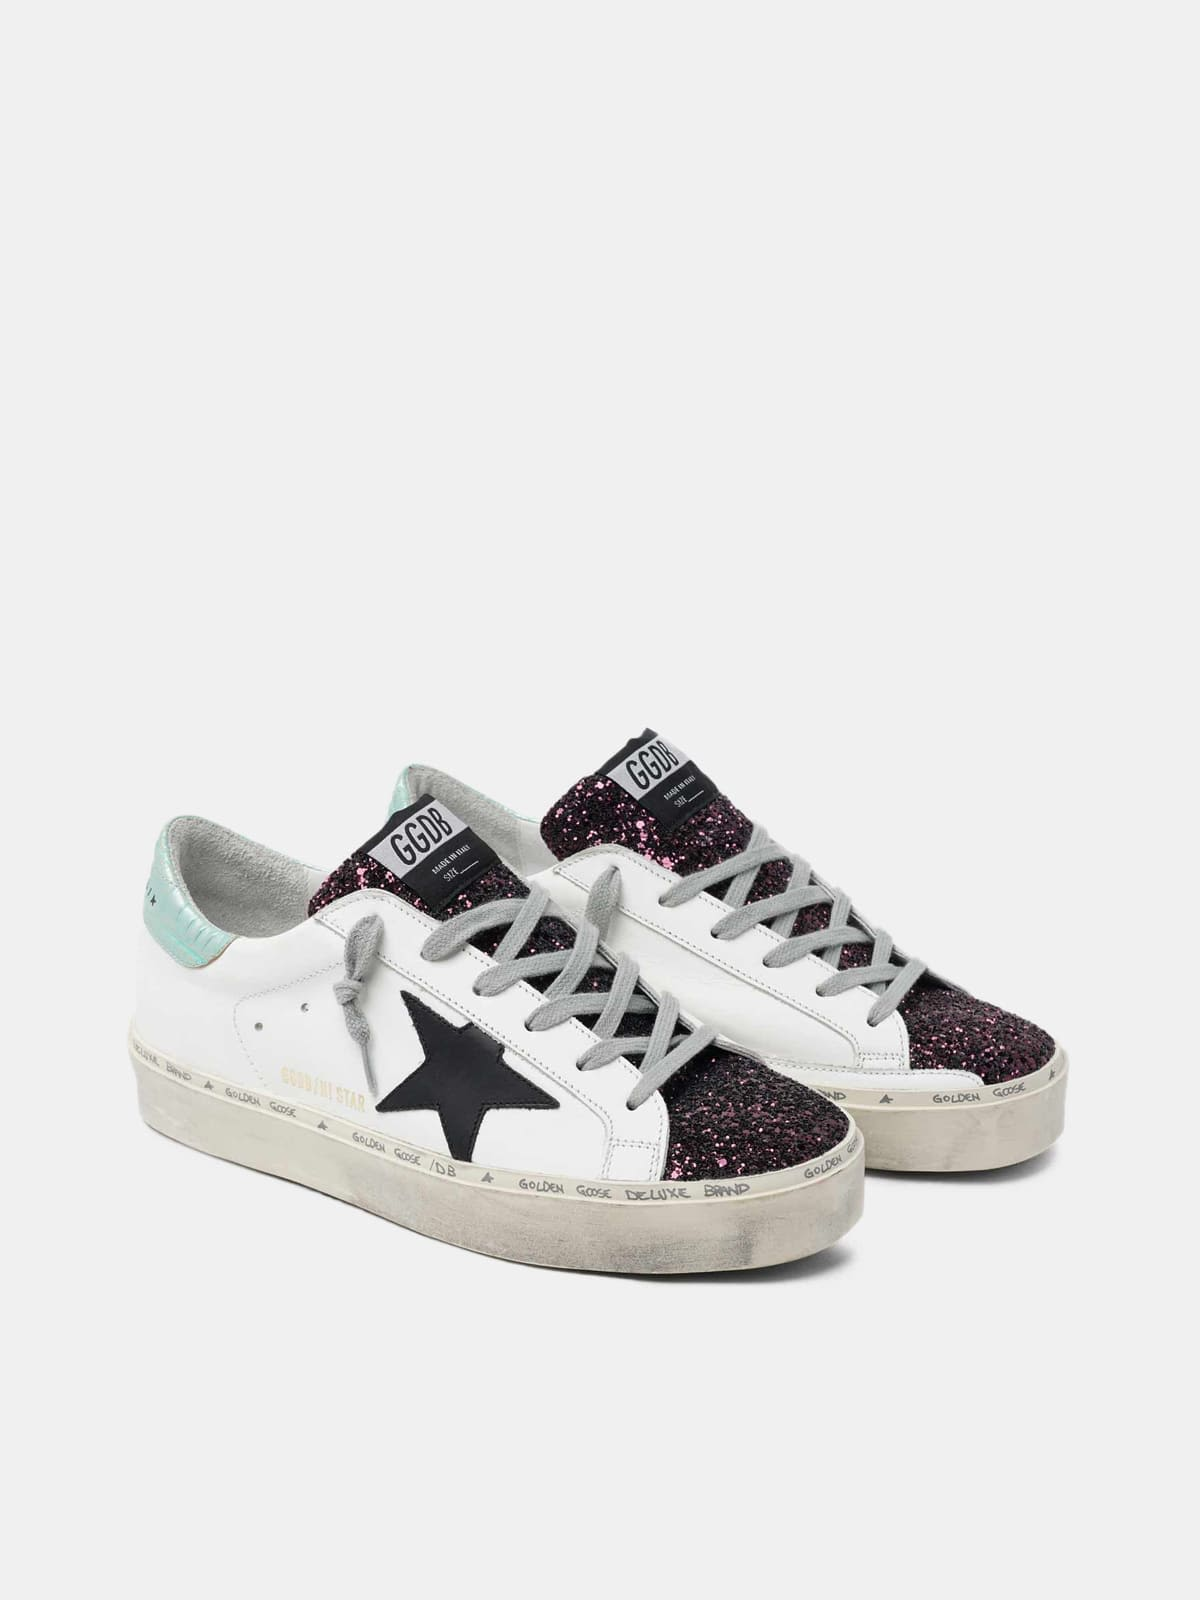 White Hi-Star sneakers with glittery insert and black star